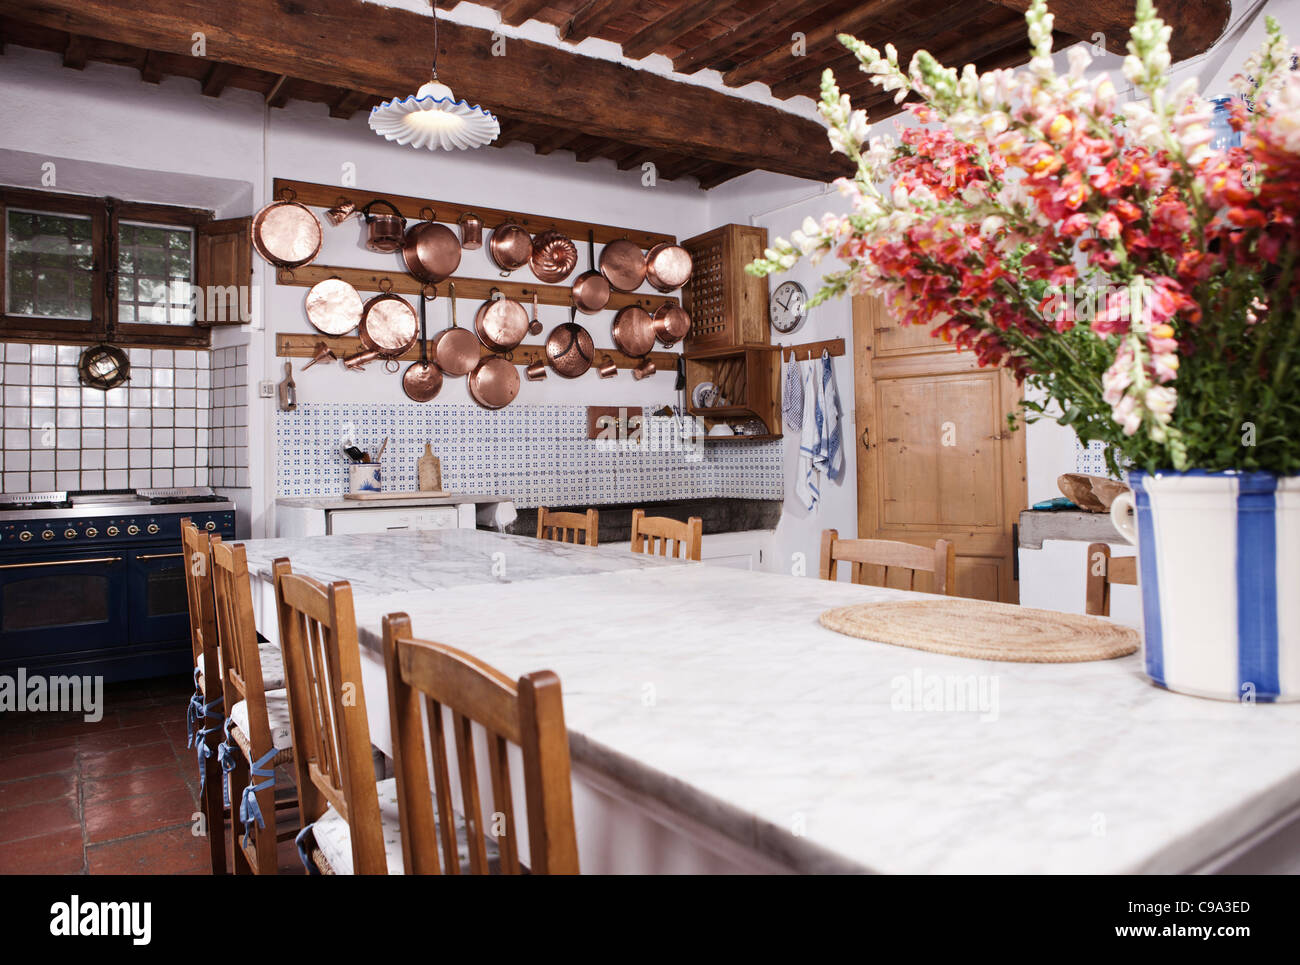 Italy, Tuscany, Magliano, View of kitchen with flowers on dining table - Stock Image